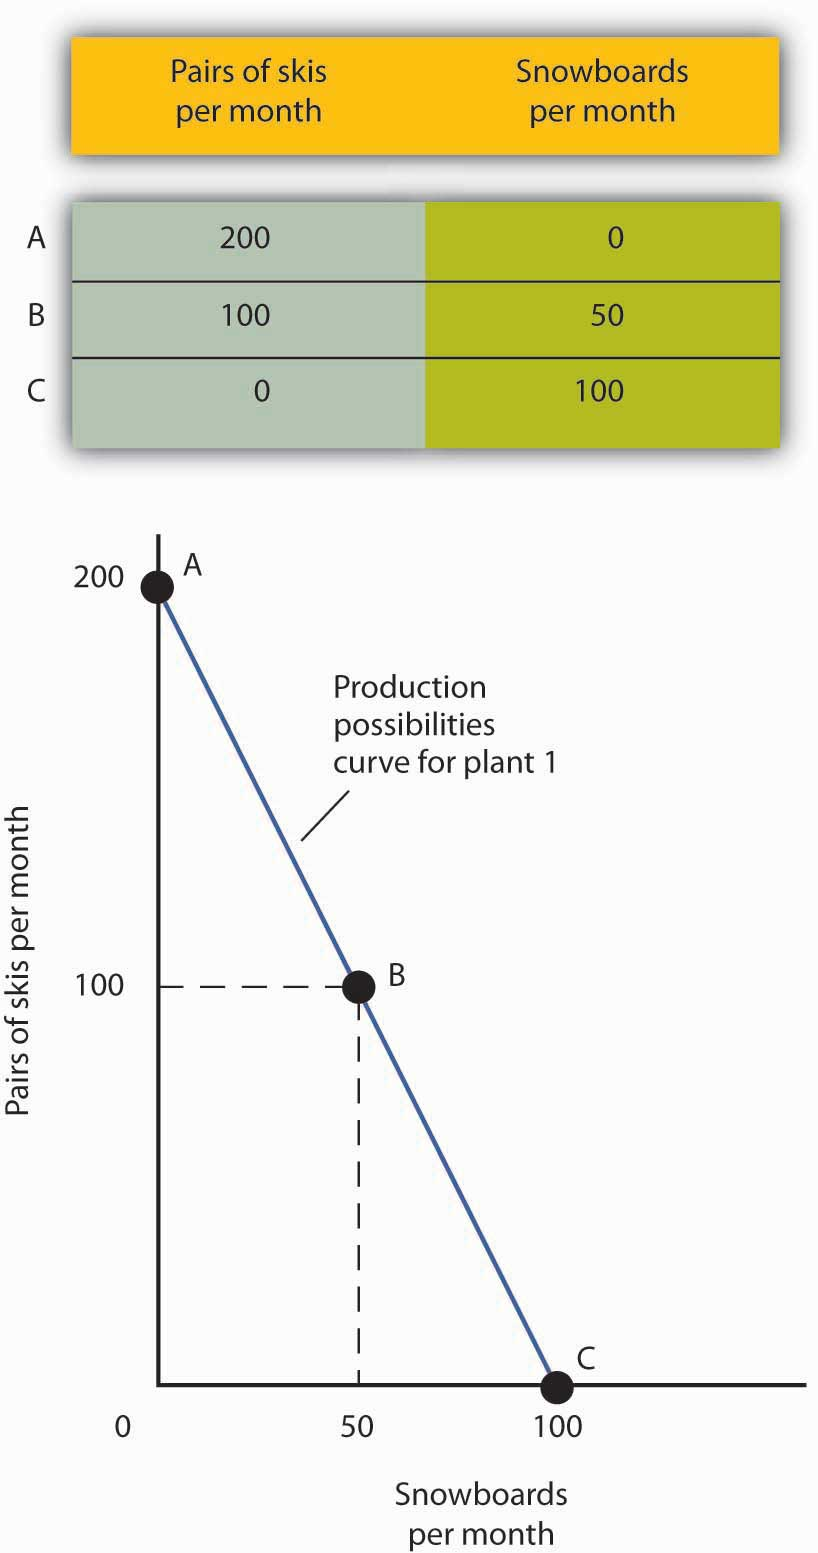 production possibilities curve shows the relationship between of